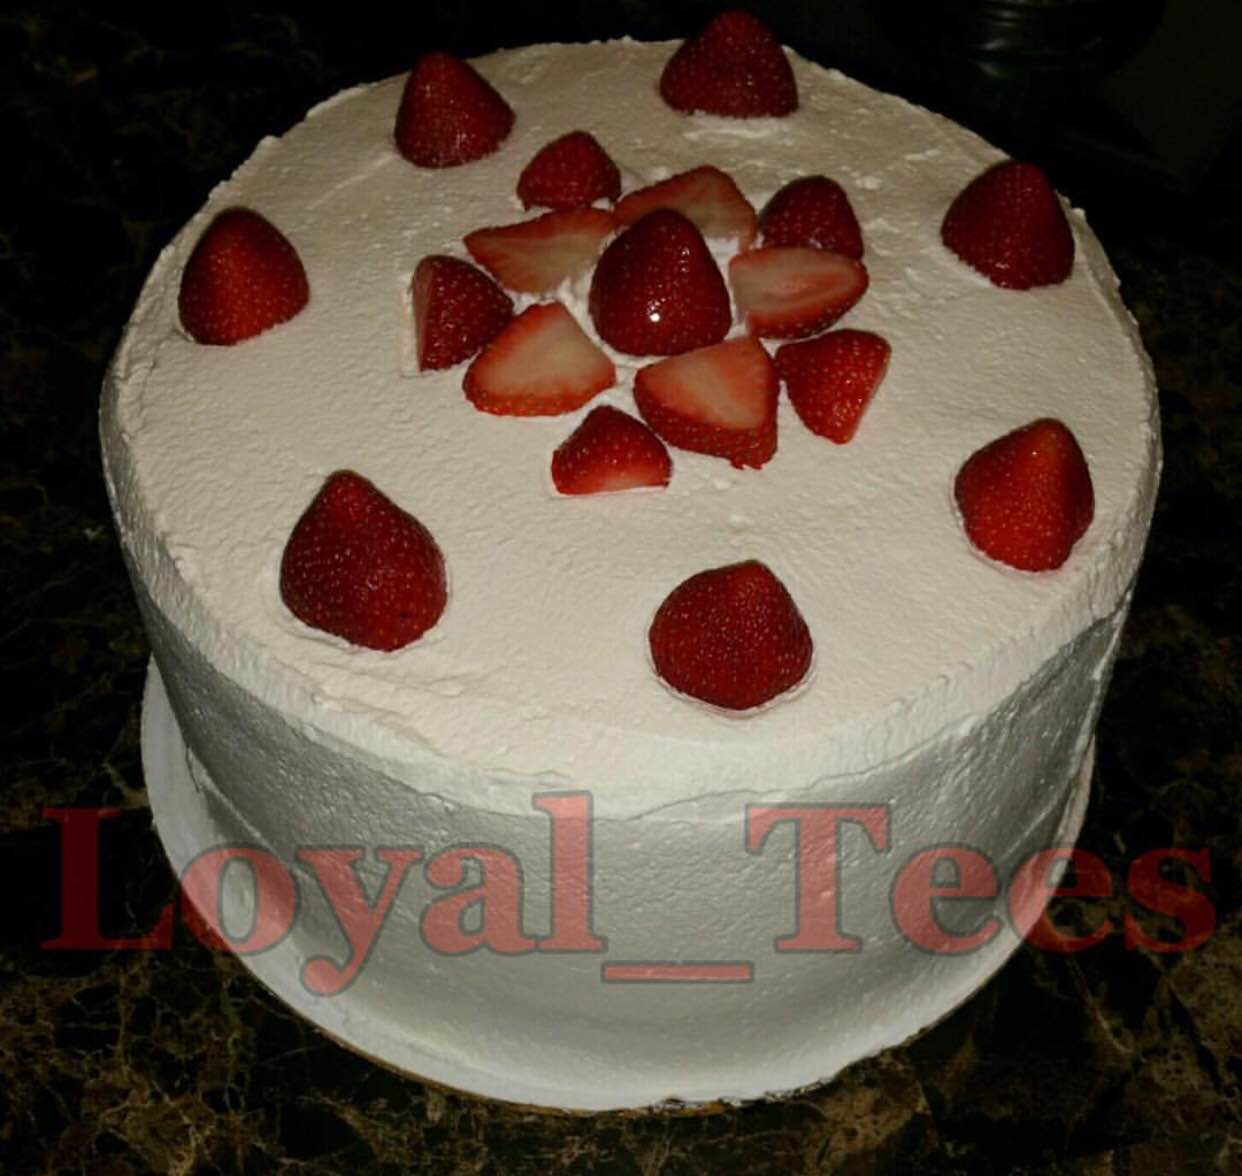 Strawberry Casata Cake